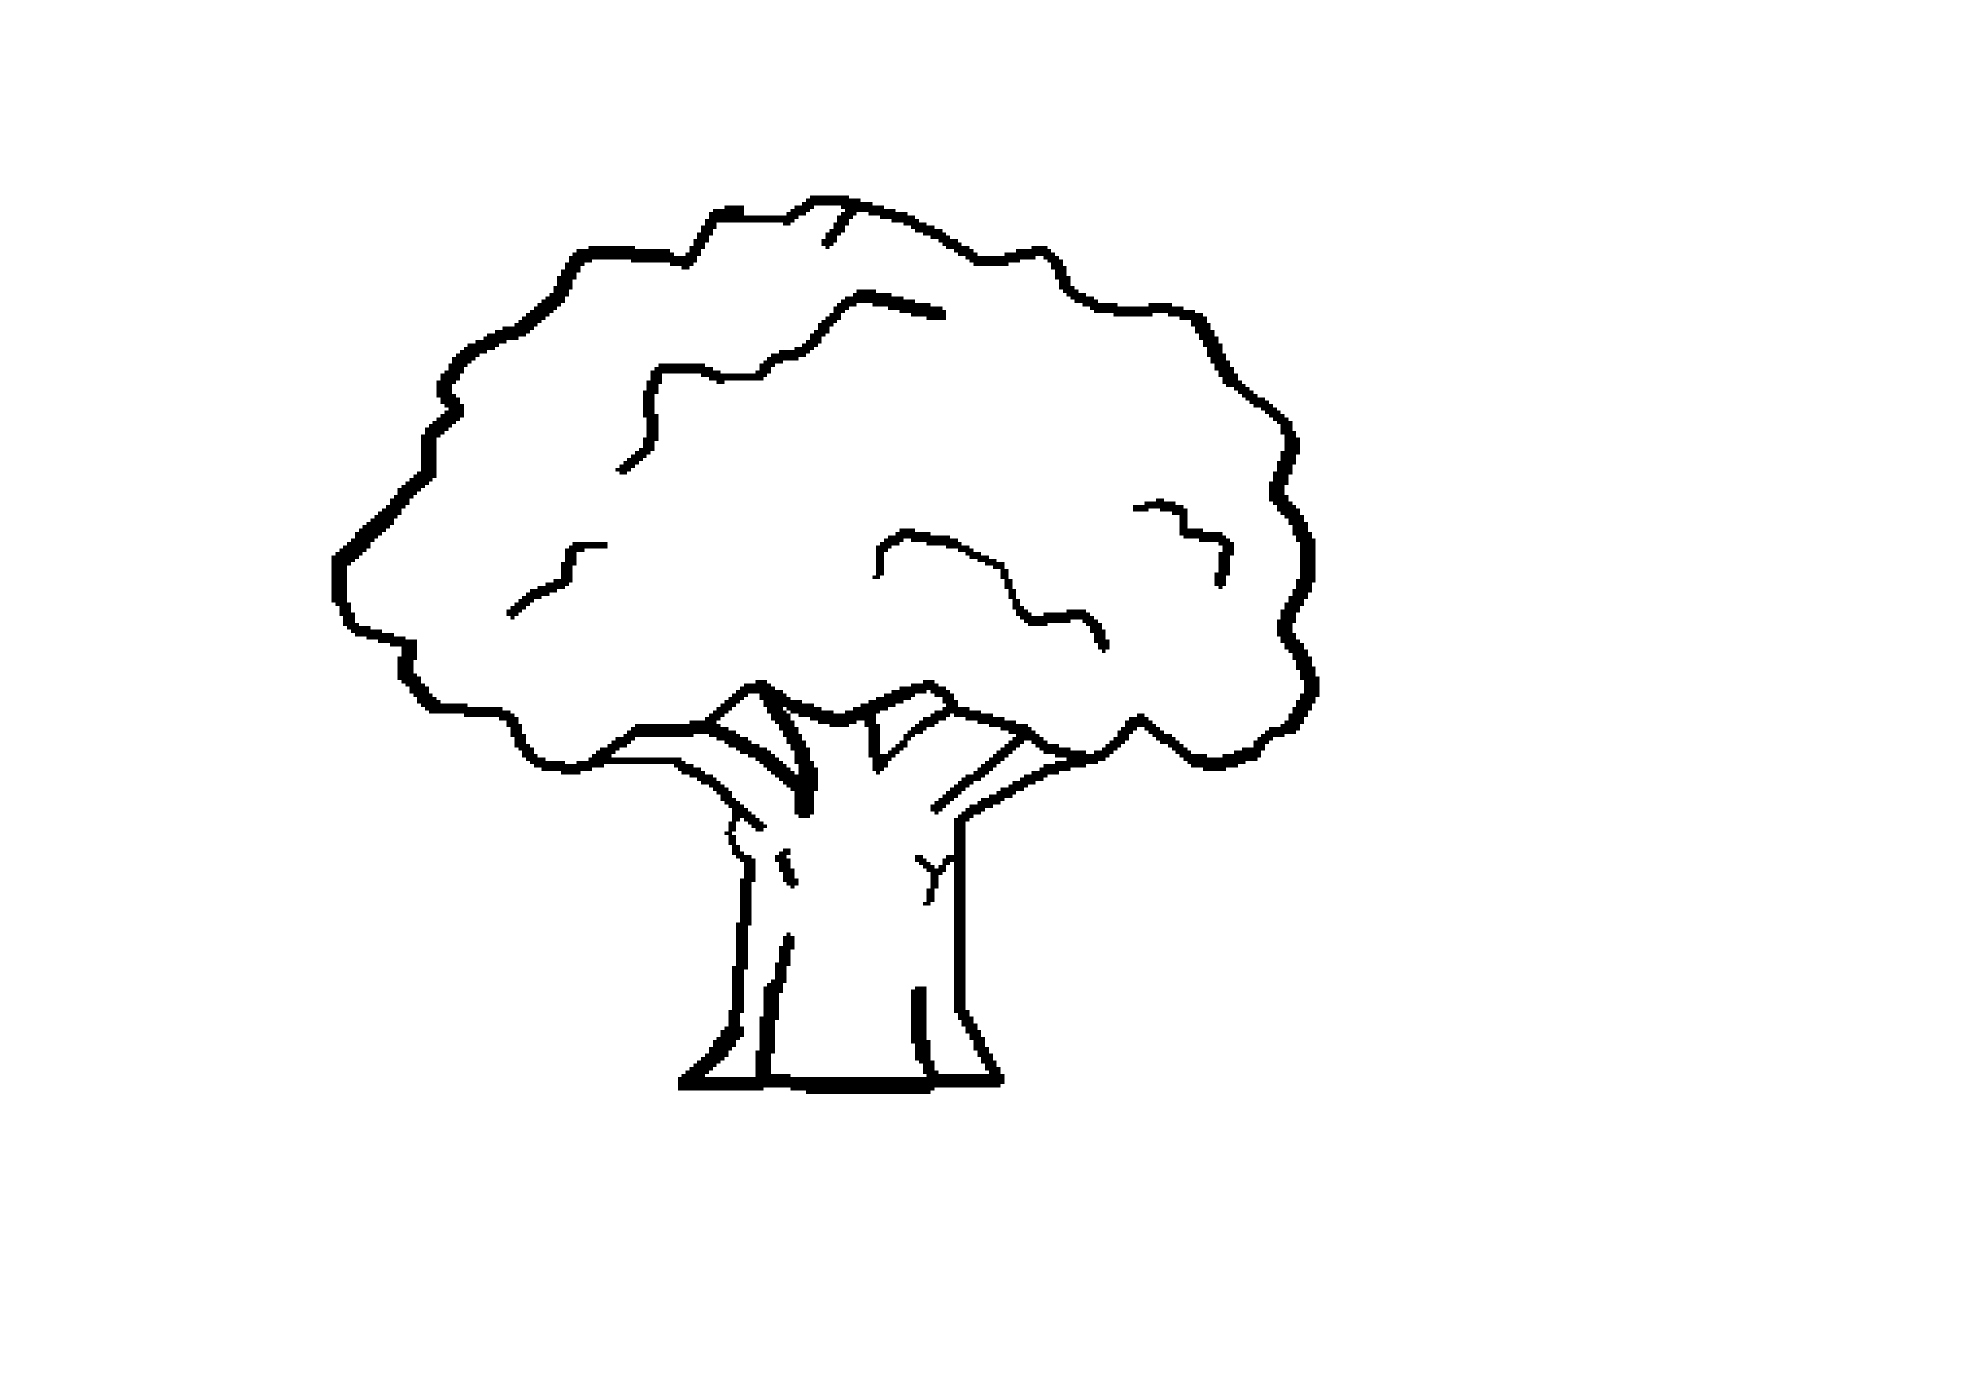 Tree Black White Line Art Coloring Book Colouring October